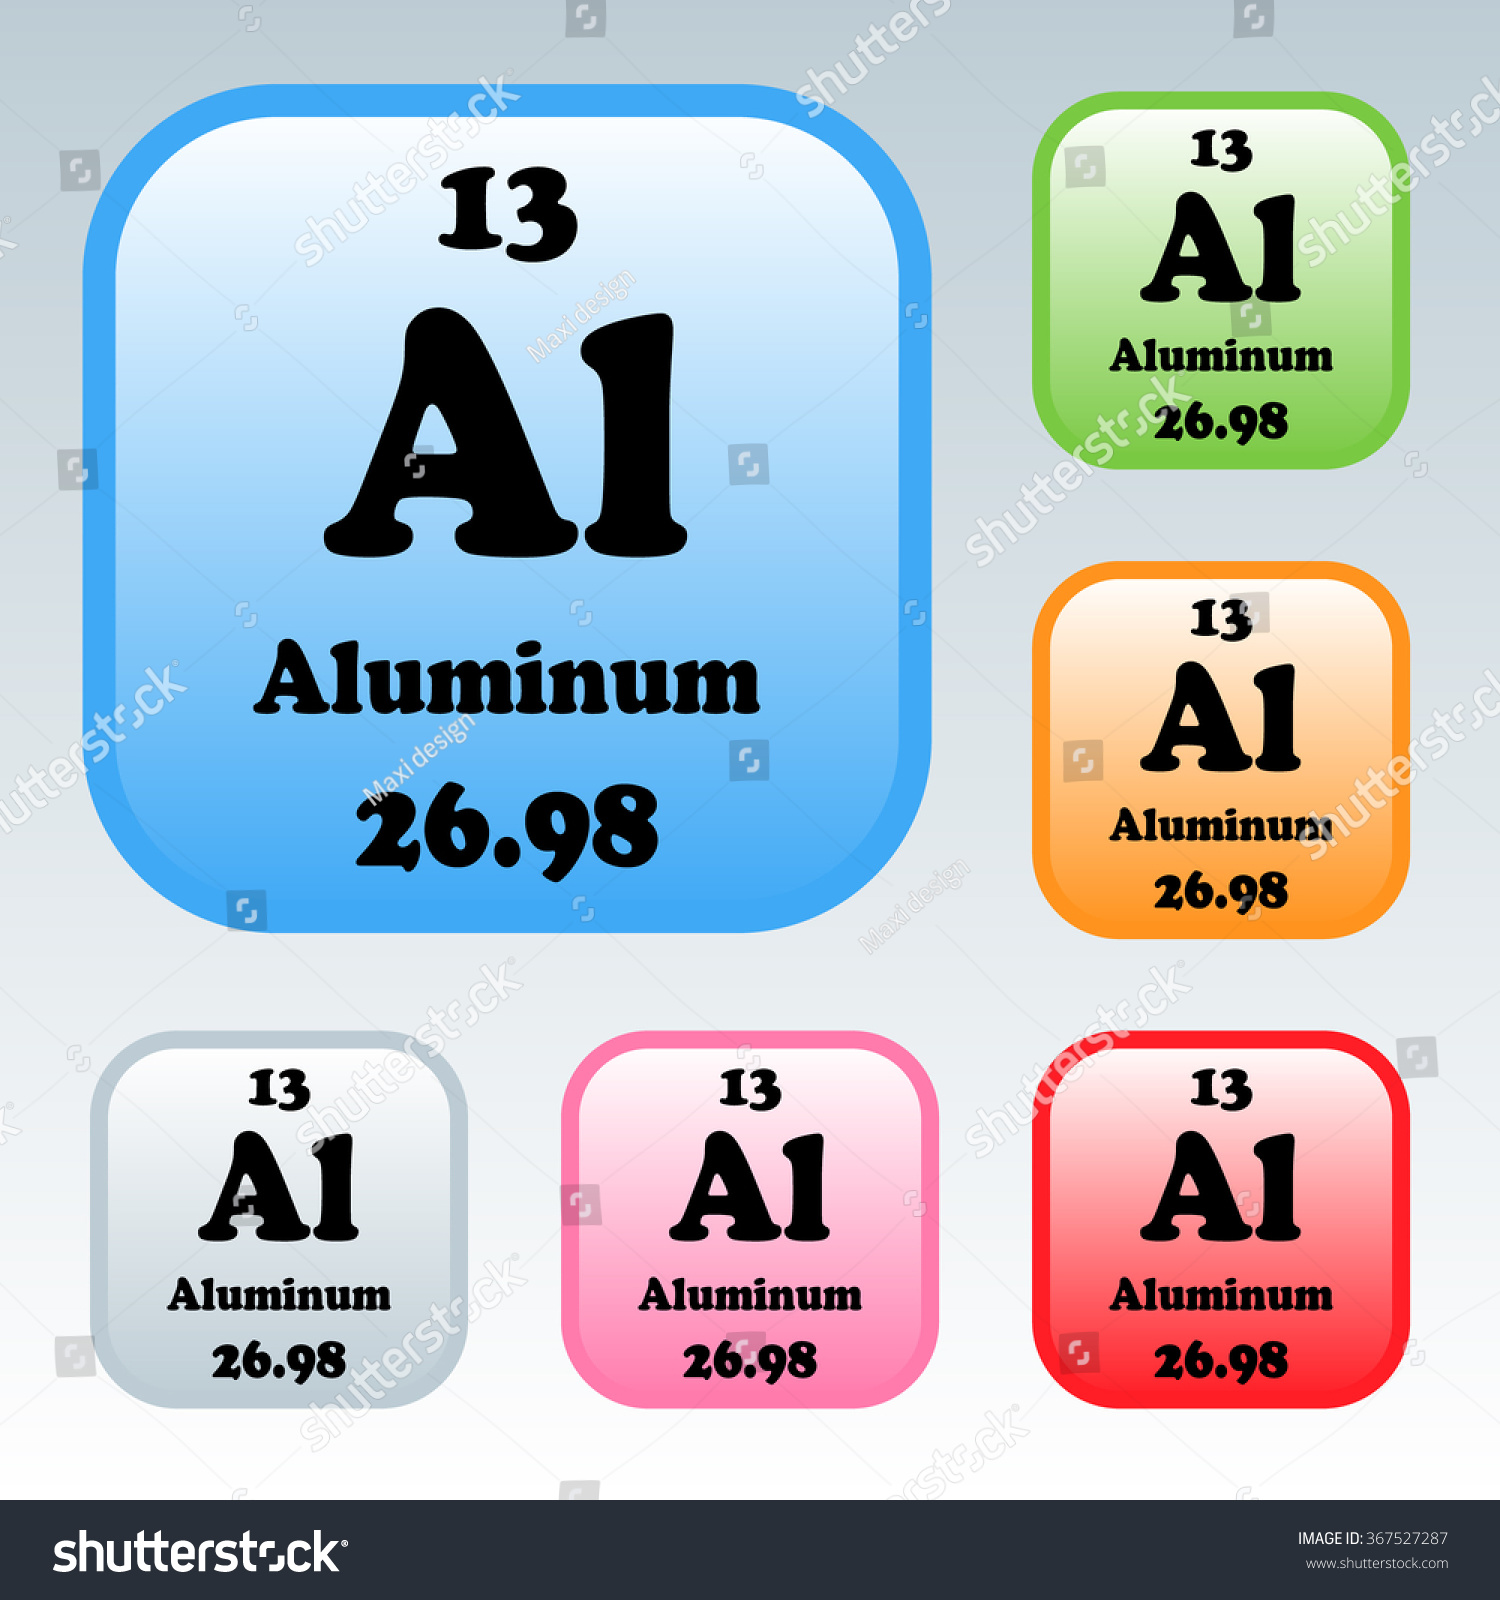 Periodic table elements aluminum stock vector 367527287 shutterstock the periodic table of the elements aluminum gamestrikefo Image collections